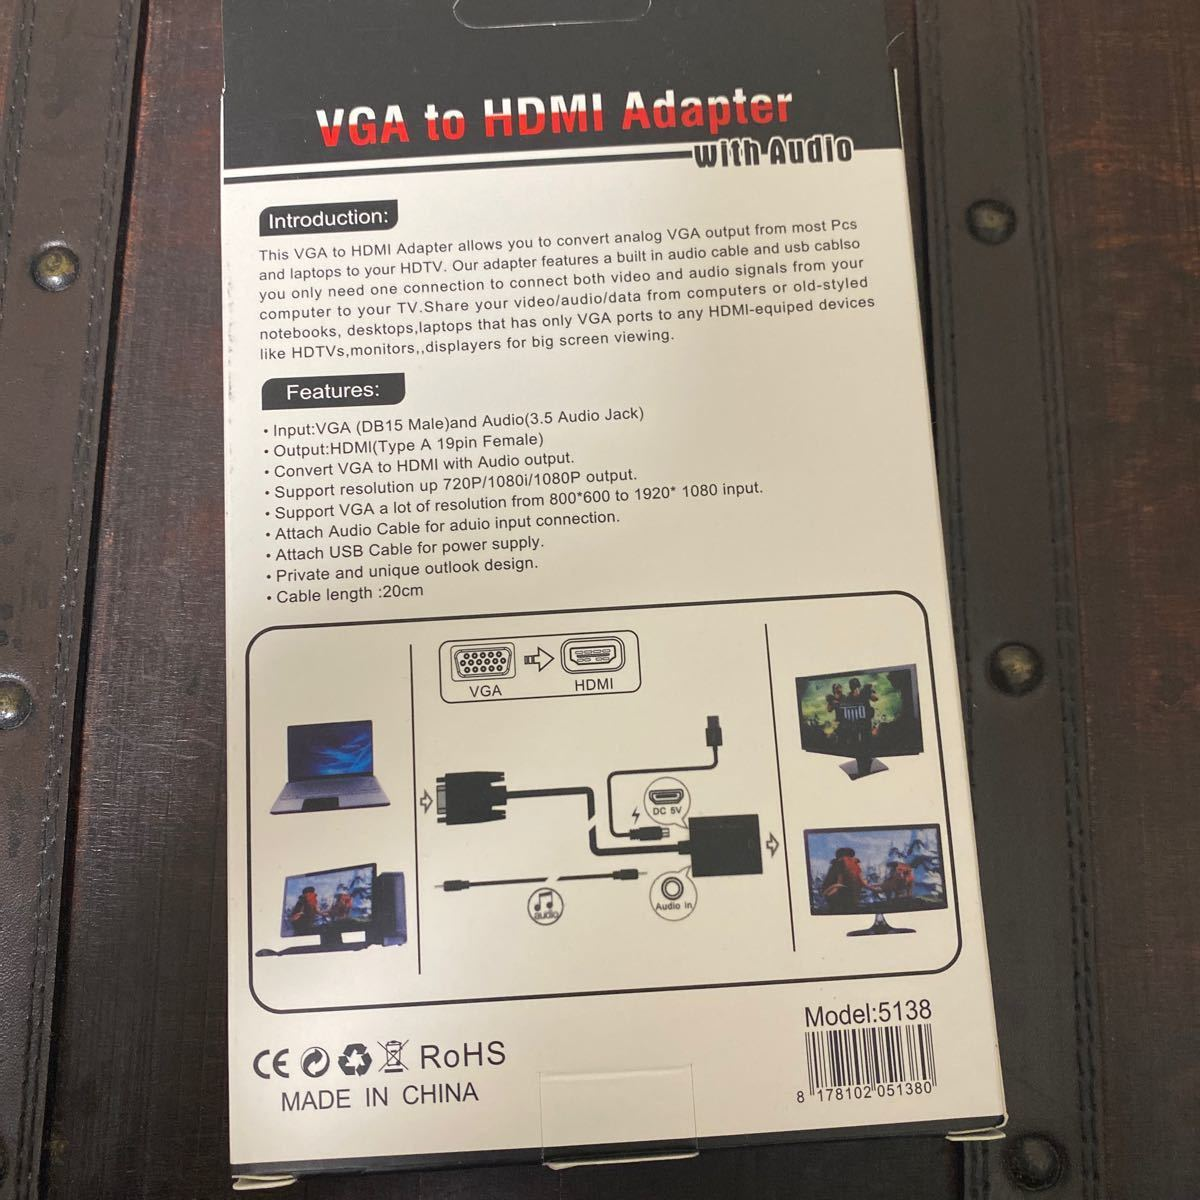 VGA TO HDMI adapter with audio